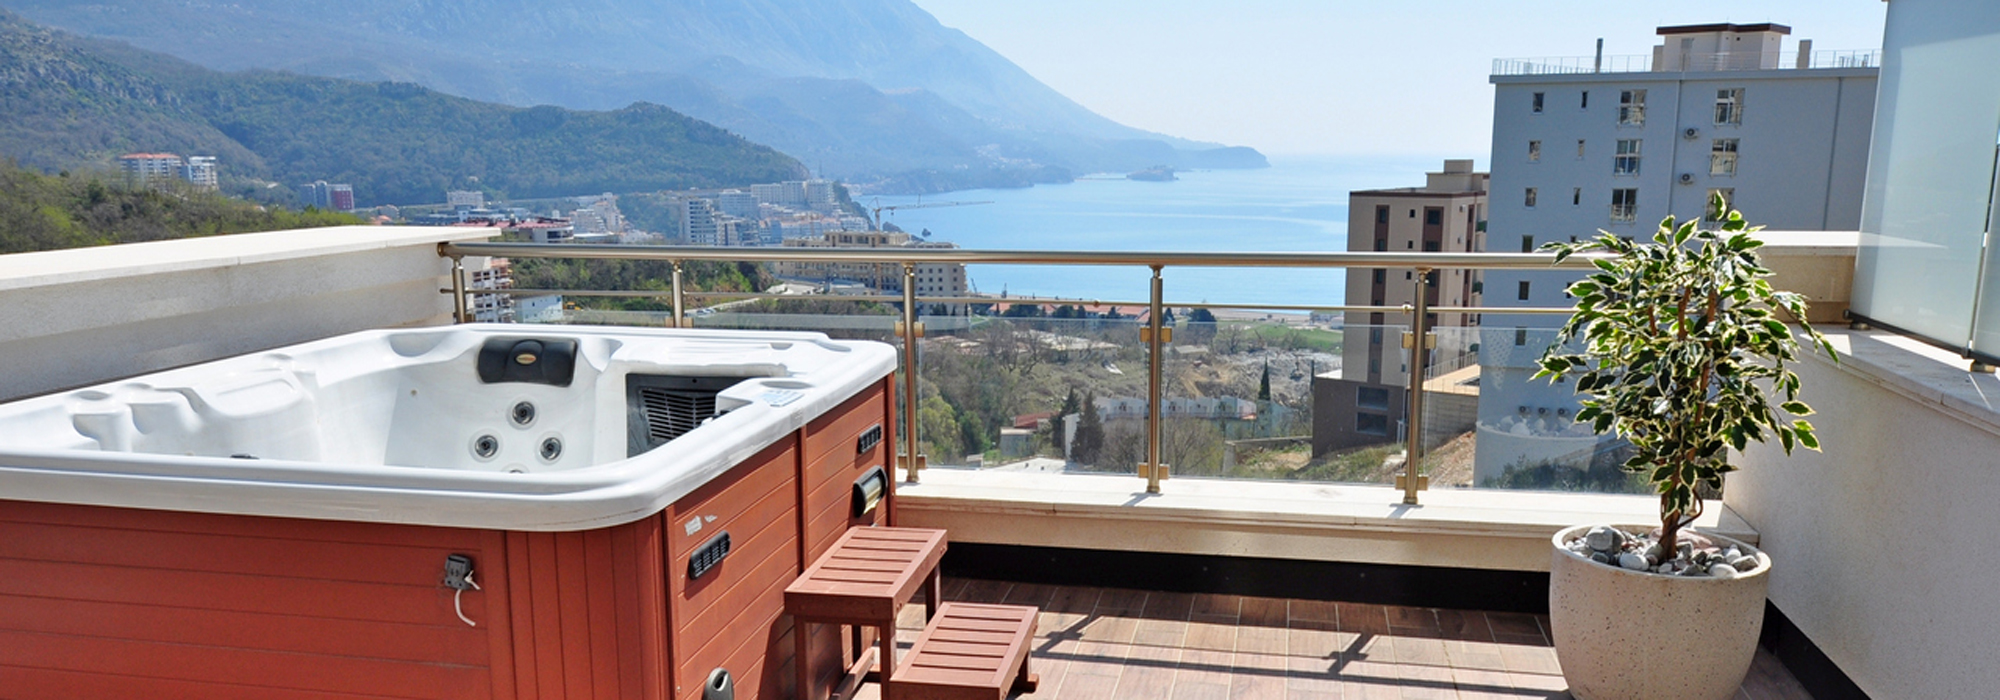 Luxurious apartment in Becici, Budva